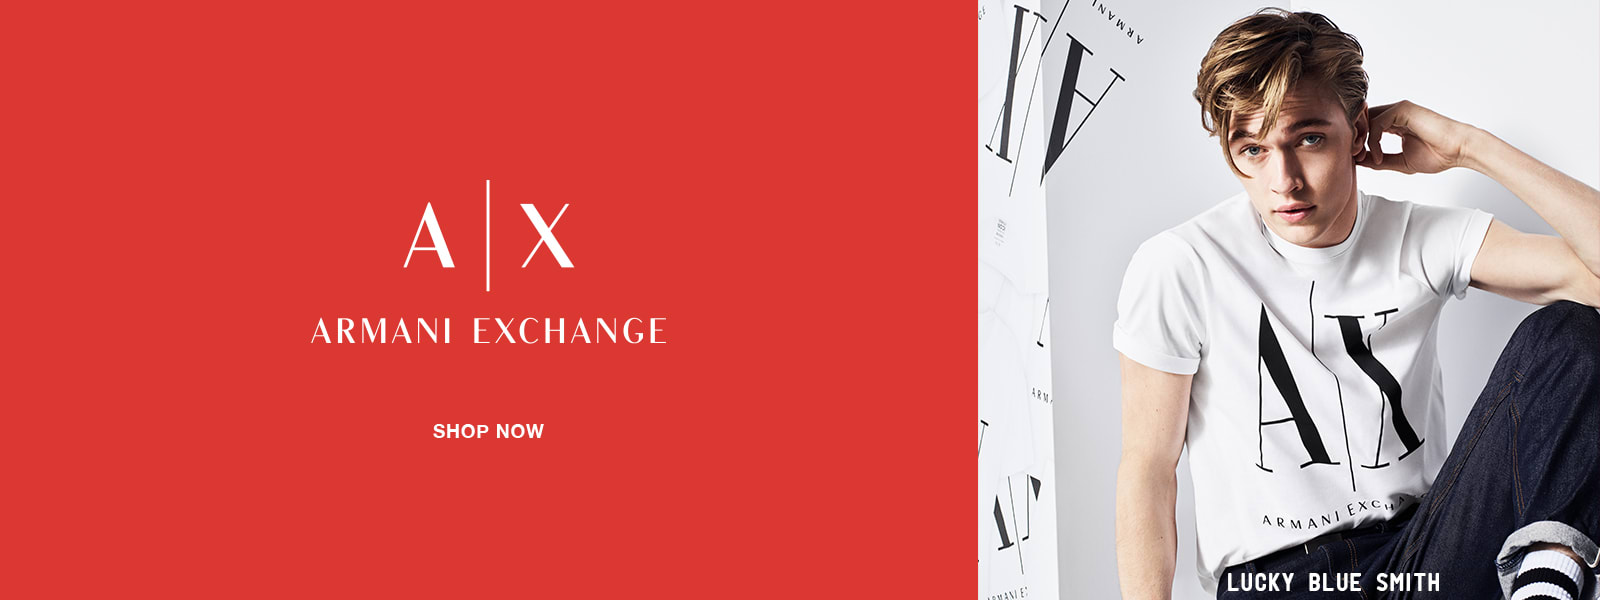 Armani Exchange - Autumn Winter 19 Collection